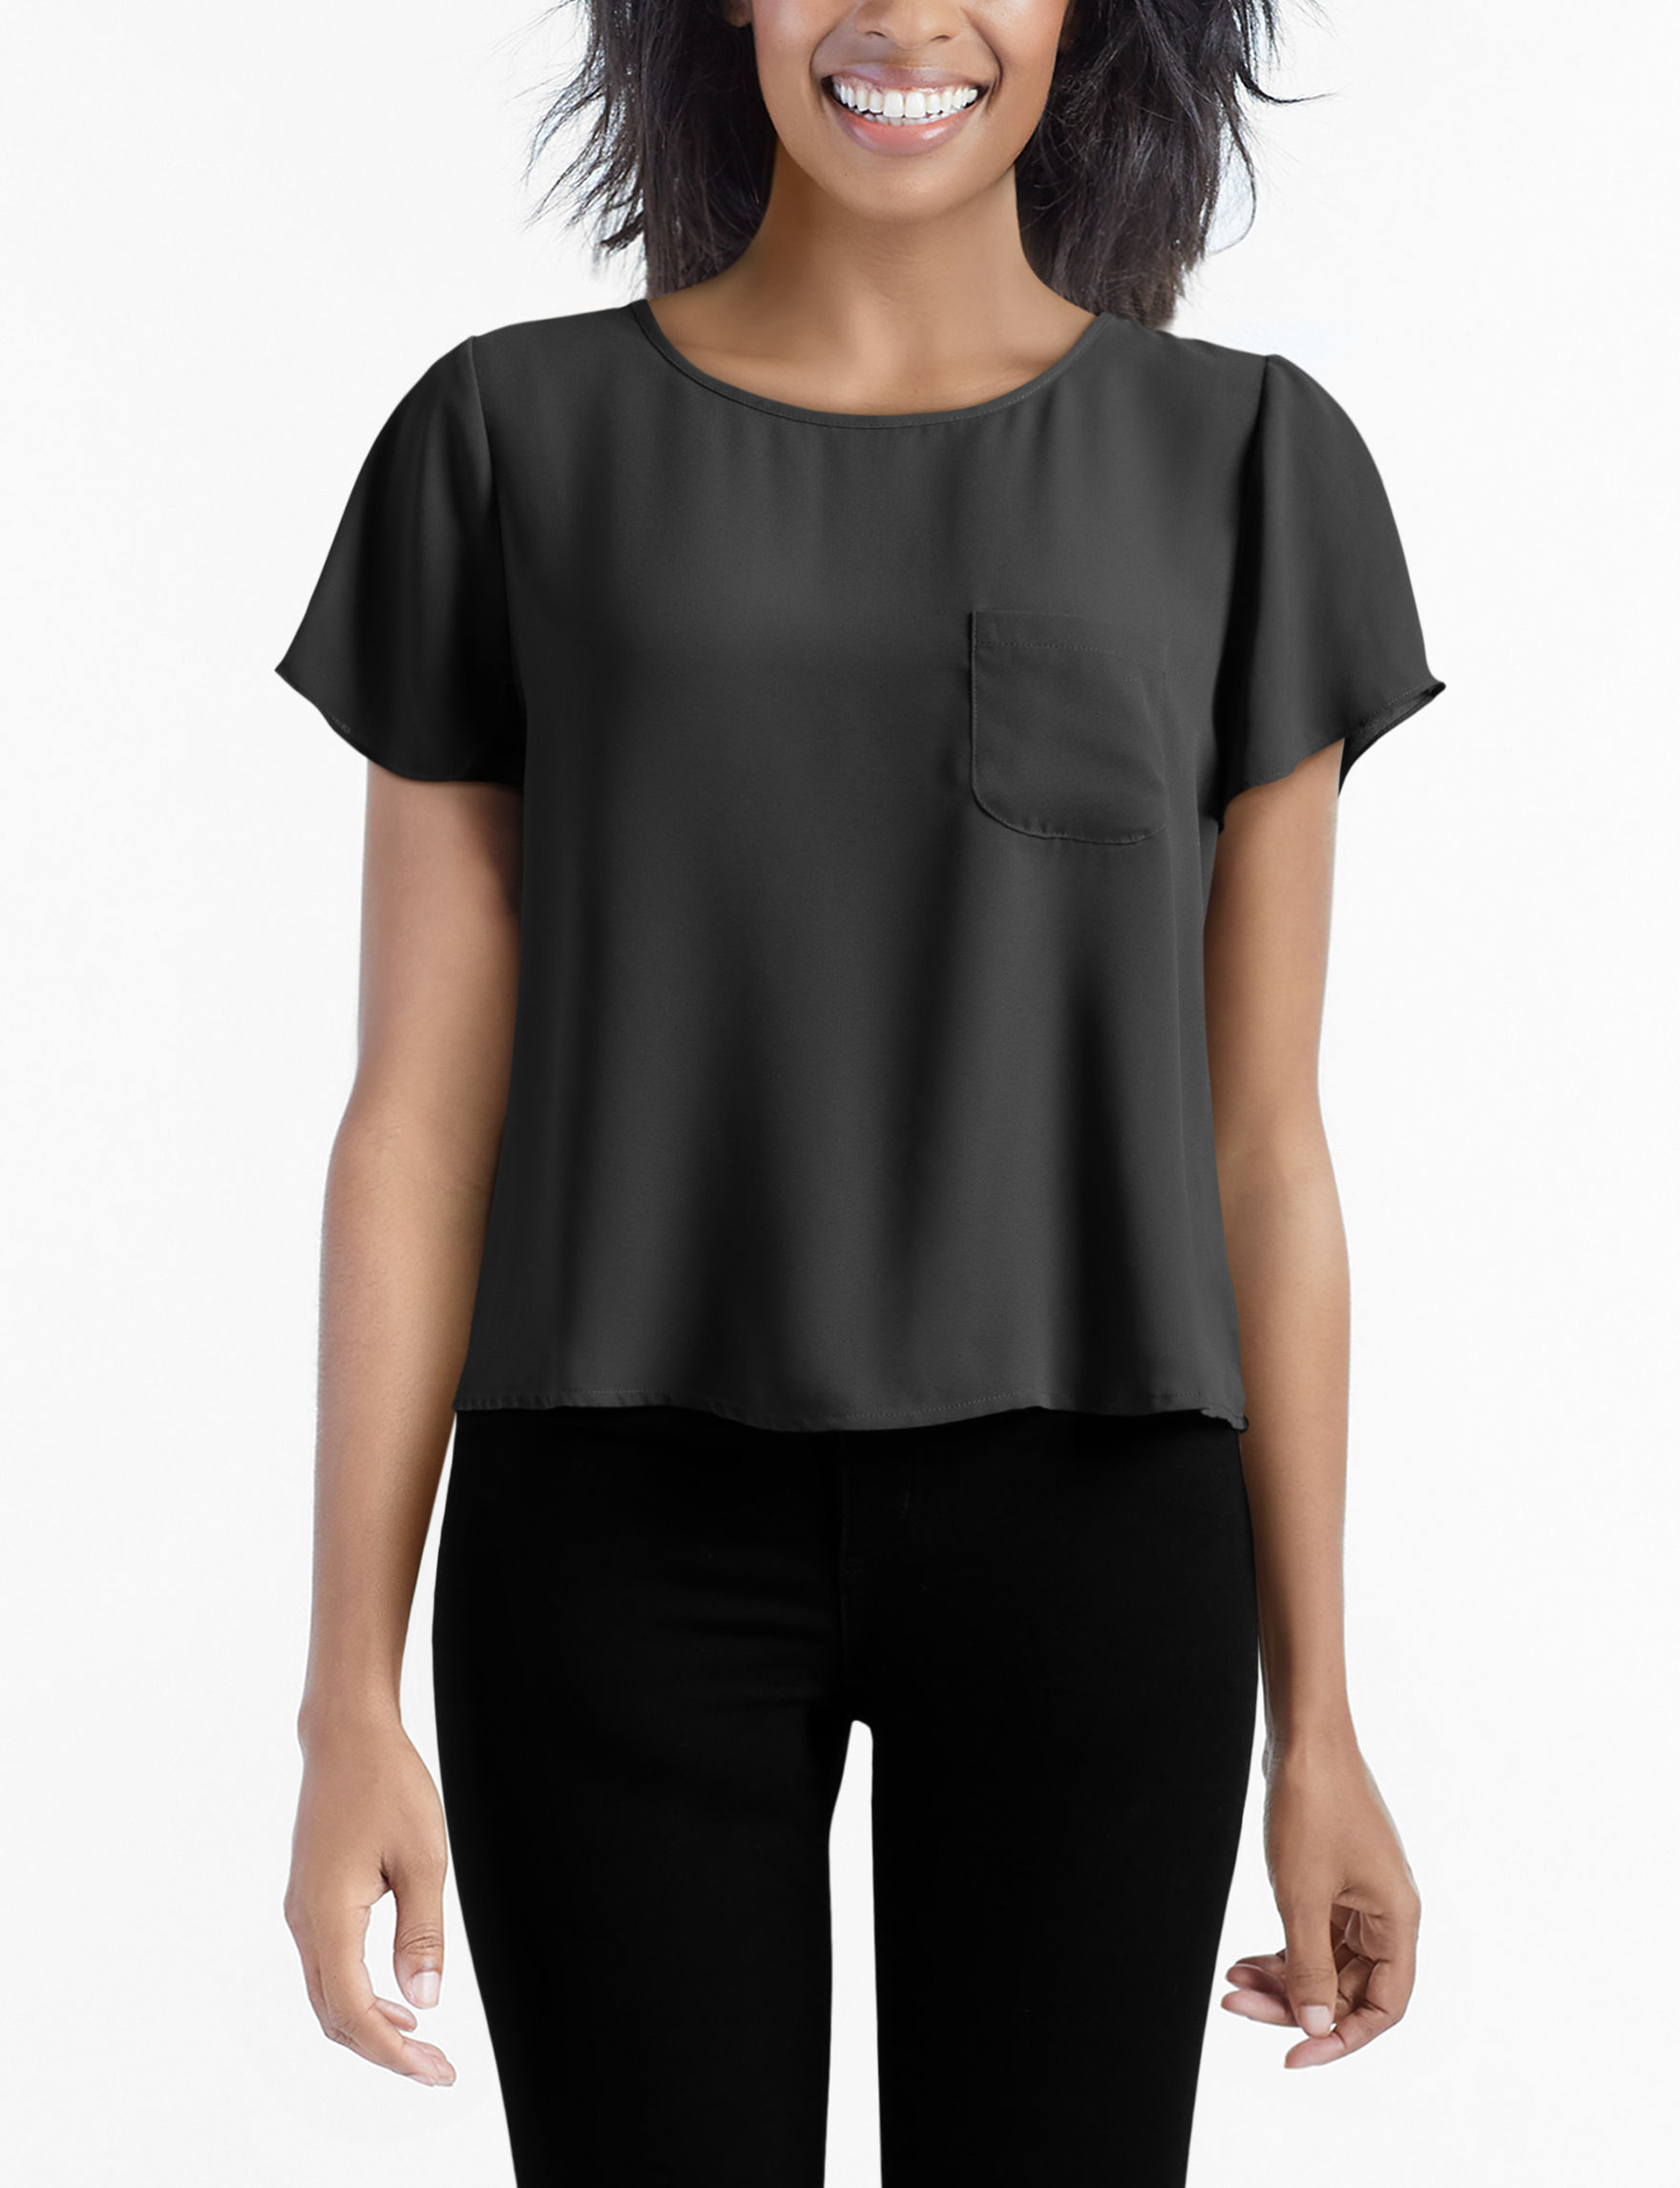 Lily White Black Shirts & Blouses